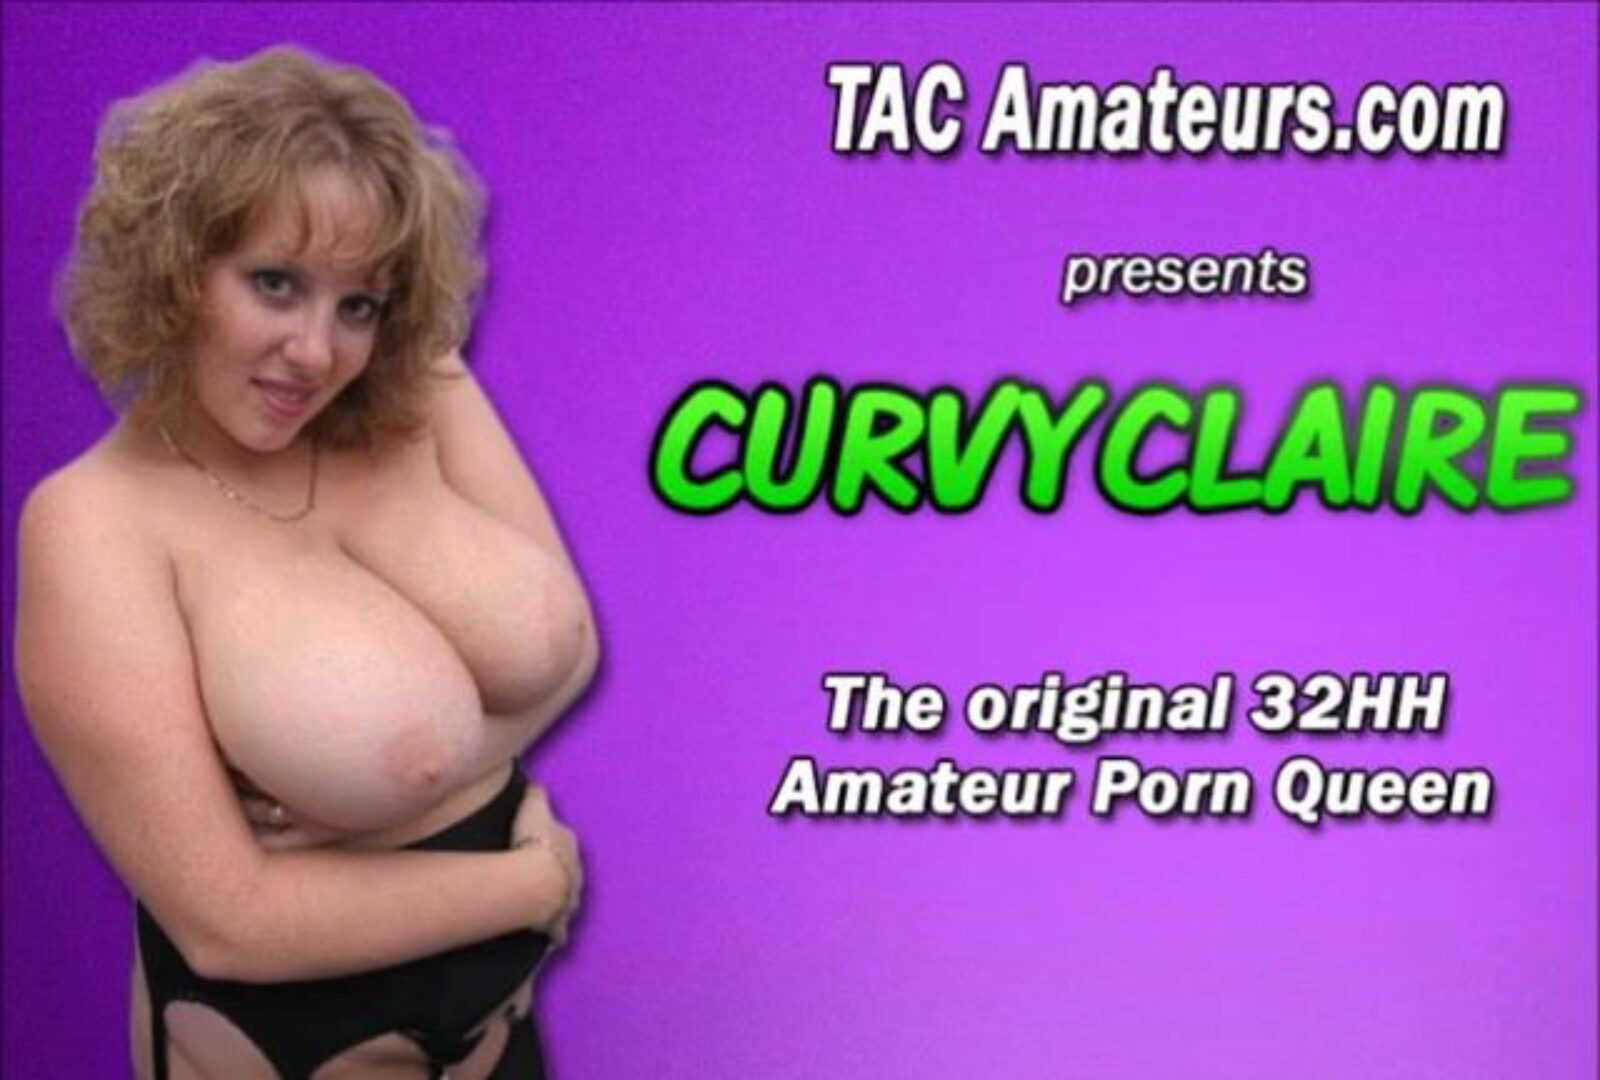 32HH Housewife CurvyClaire stuffed and facial cumshot Amazing dilettante porn industry star / housewife CurvyClaire fucks a website member